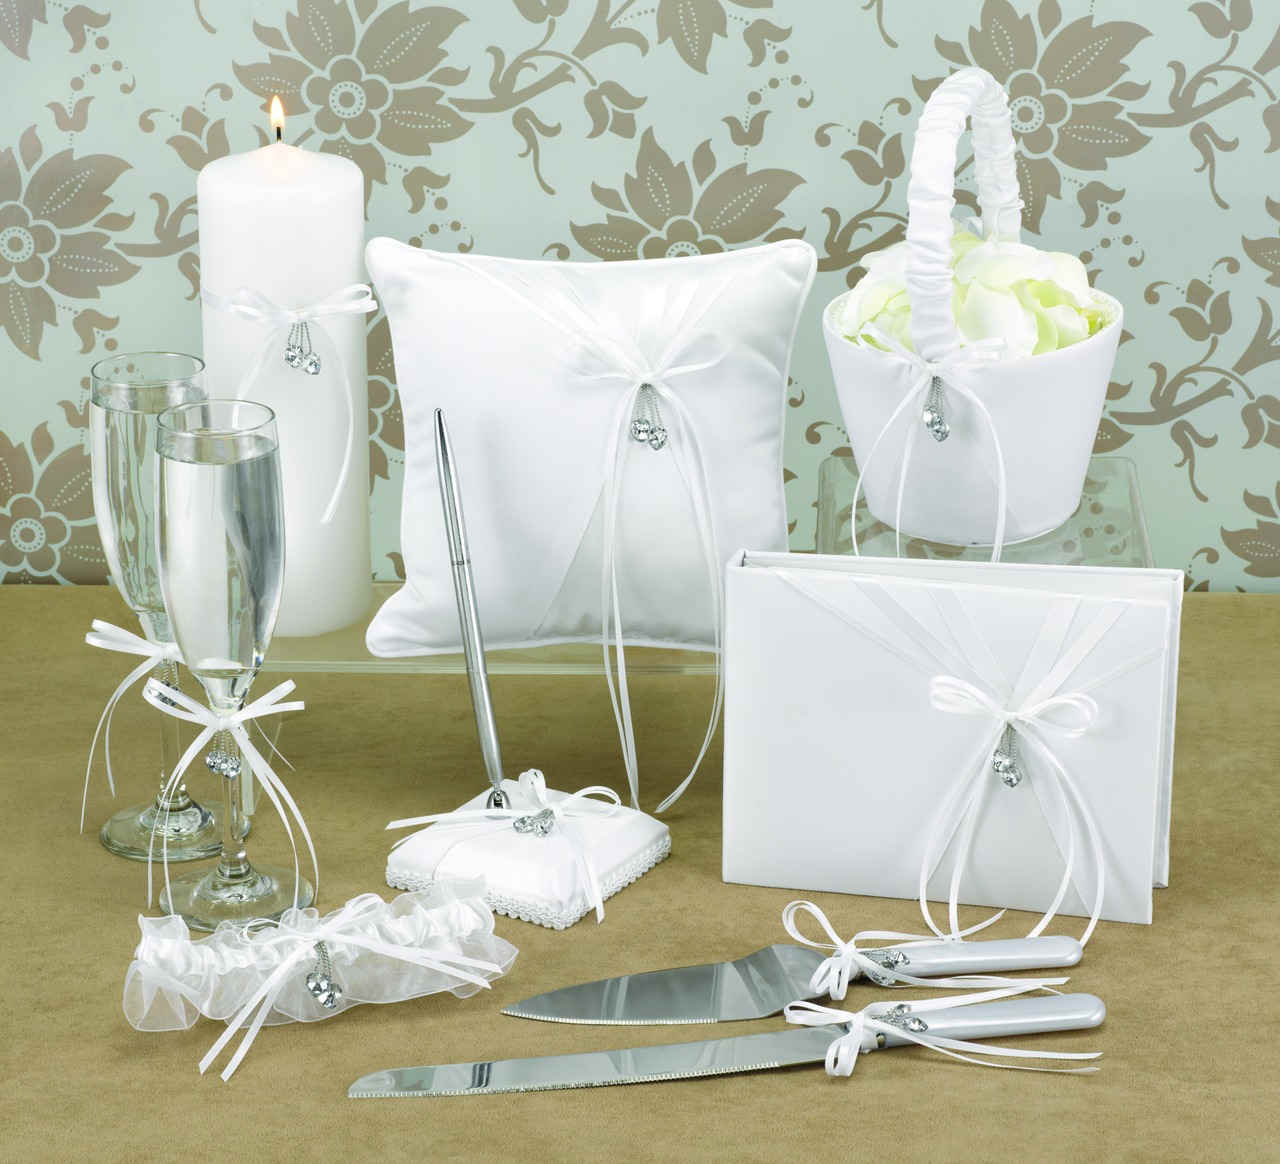 Wedding supplies romantic decoration up wedding supplies at the 10 reasons to shop sams club cakes for your wedding junglespirit Choice Image